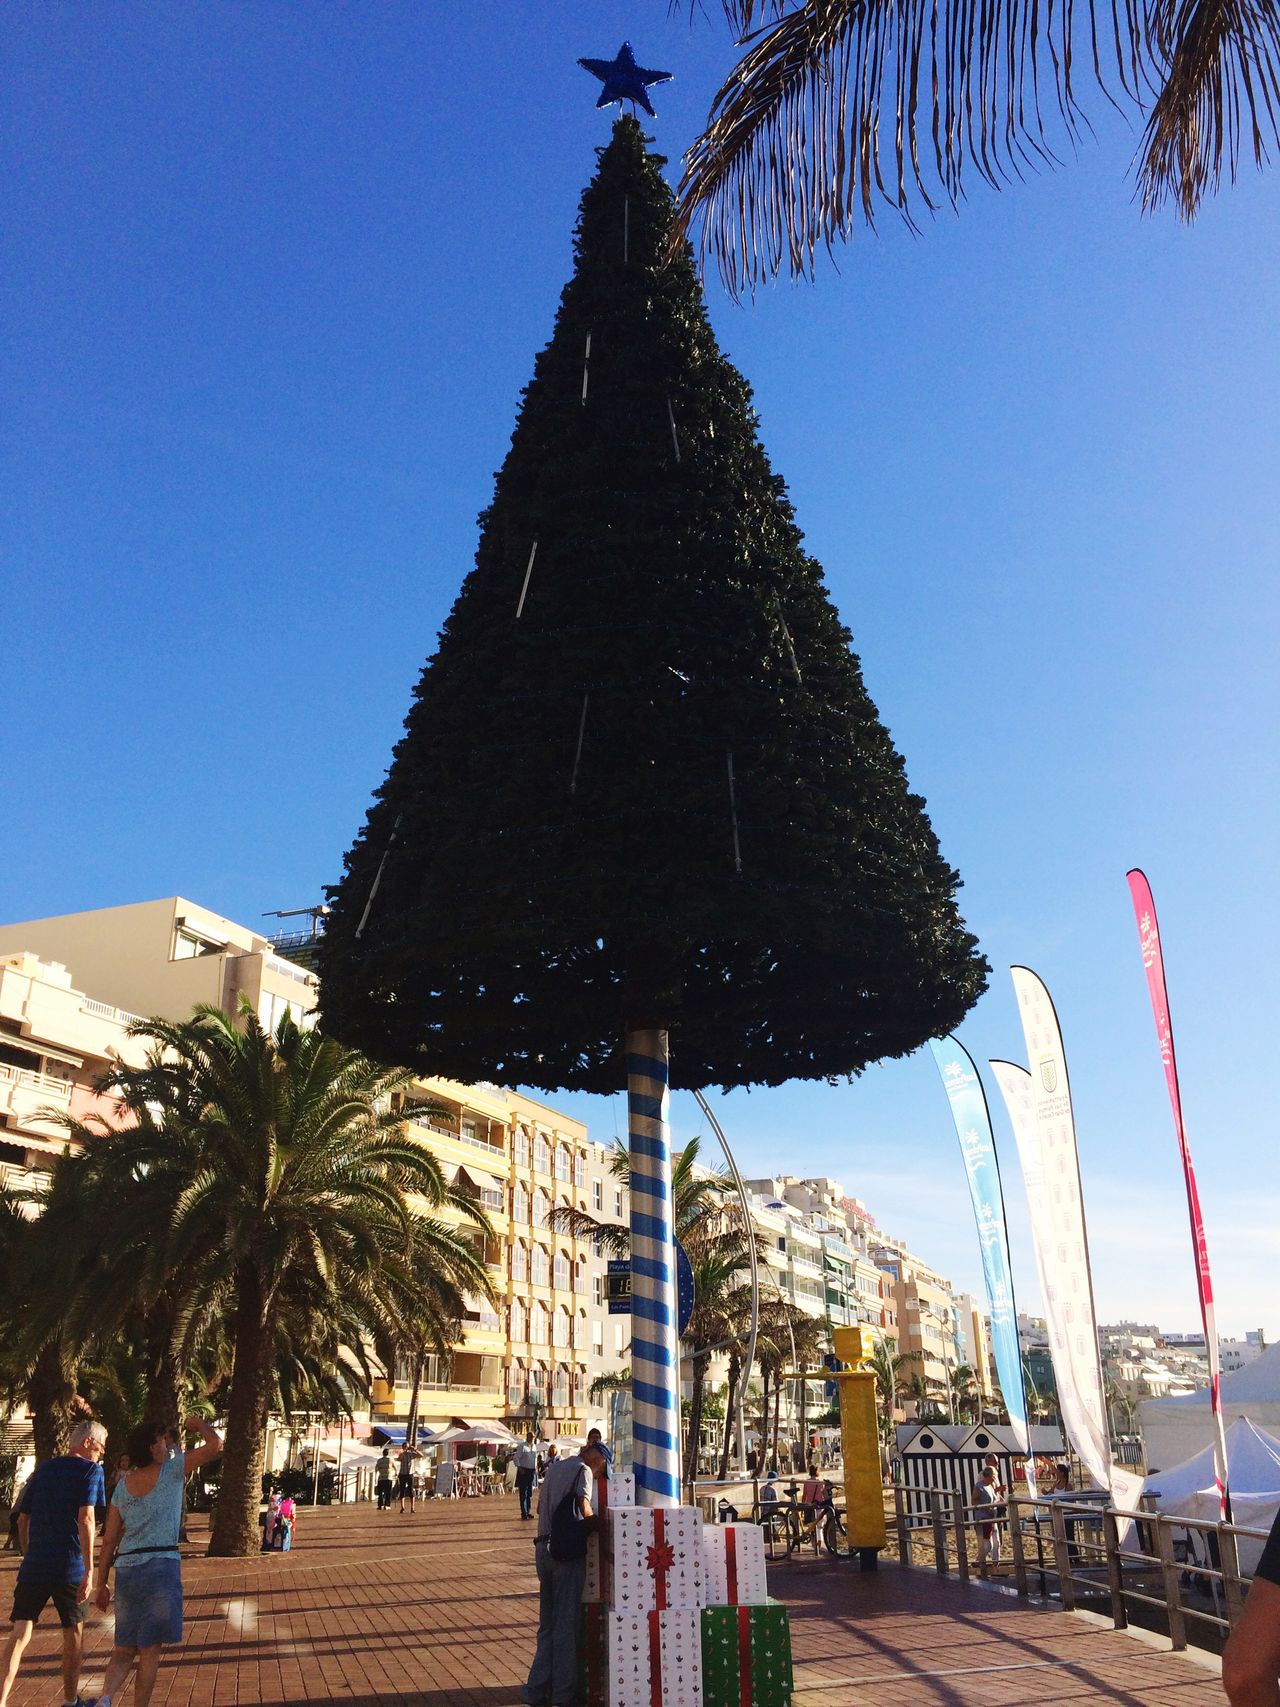 December Christmas Tree Gran Canaria Sunshine Lovely Weather Las Palmas De Gran Canaria Clear Sky